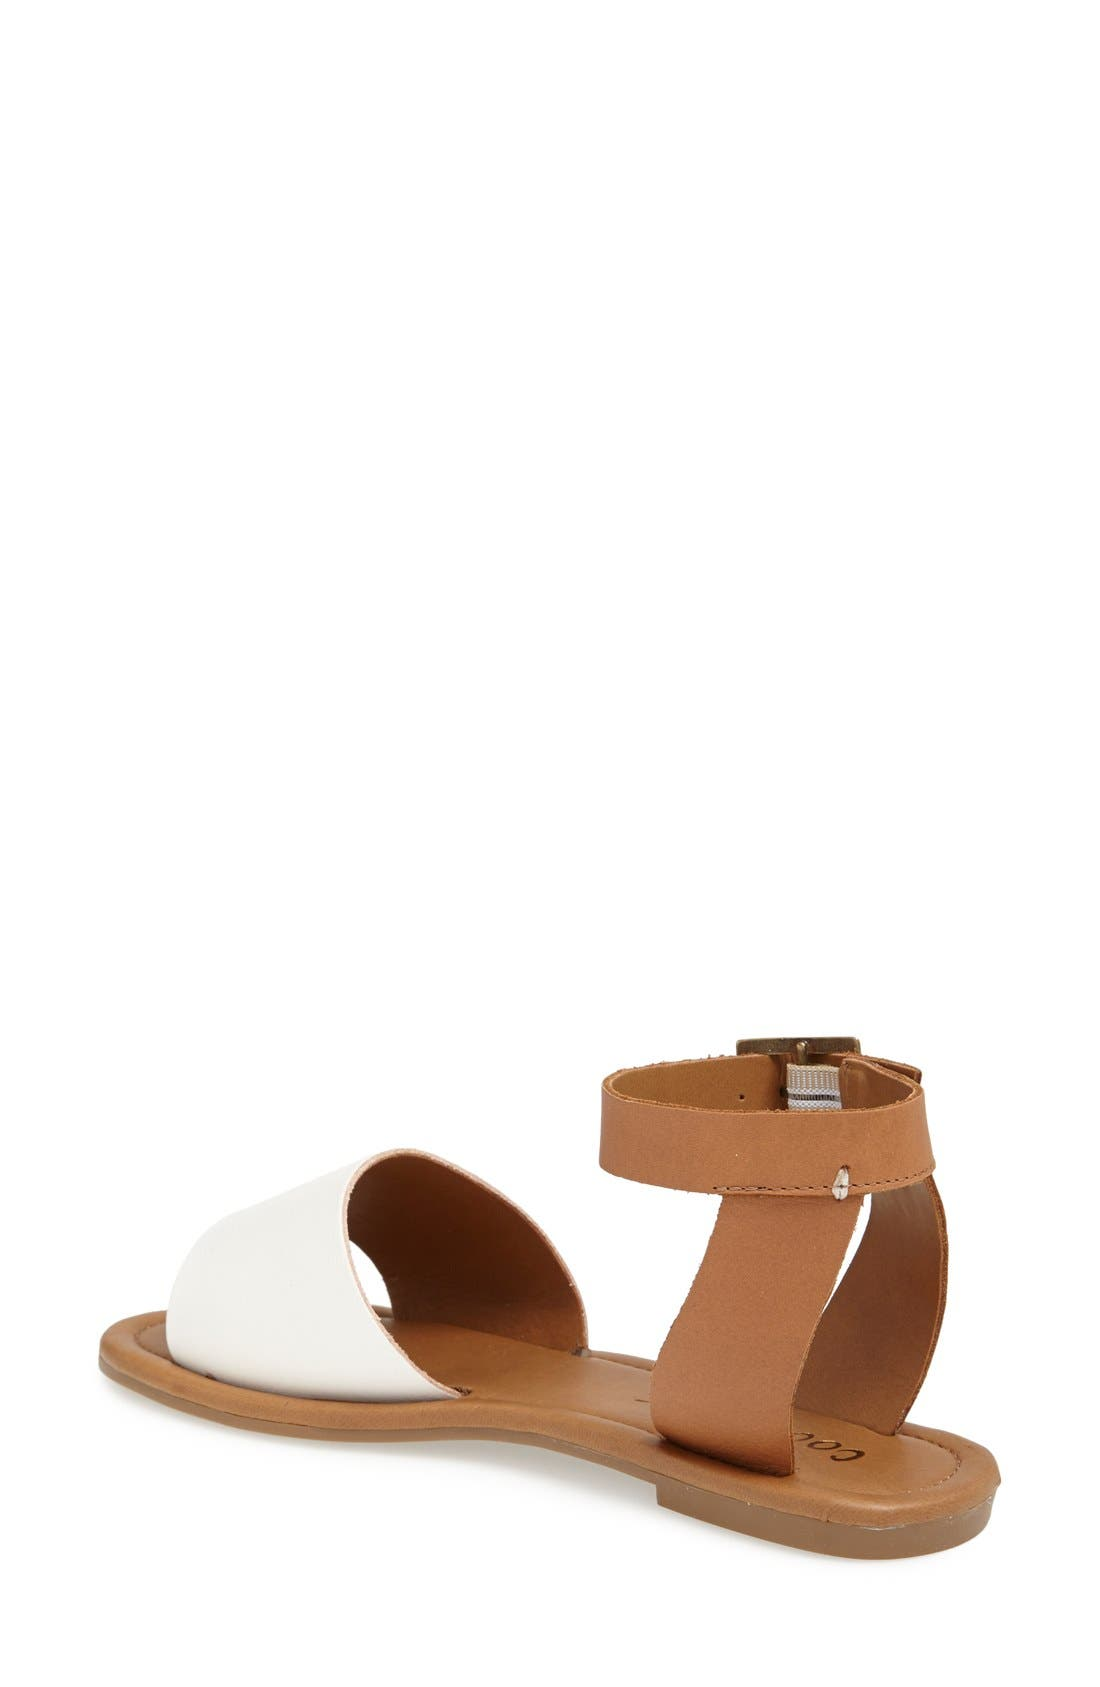 Alternate Image 2  - Coconuts by Matisse 'All About' Leather Ankle Strap Sandal